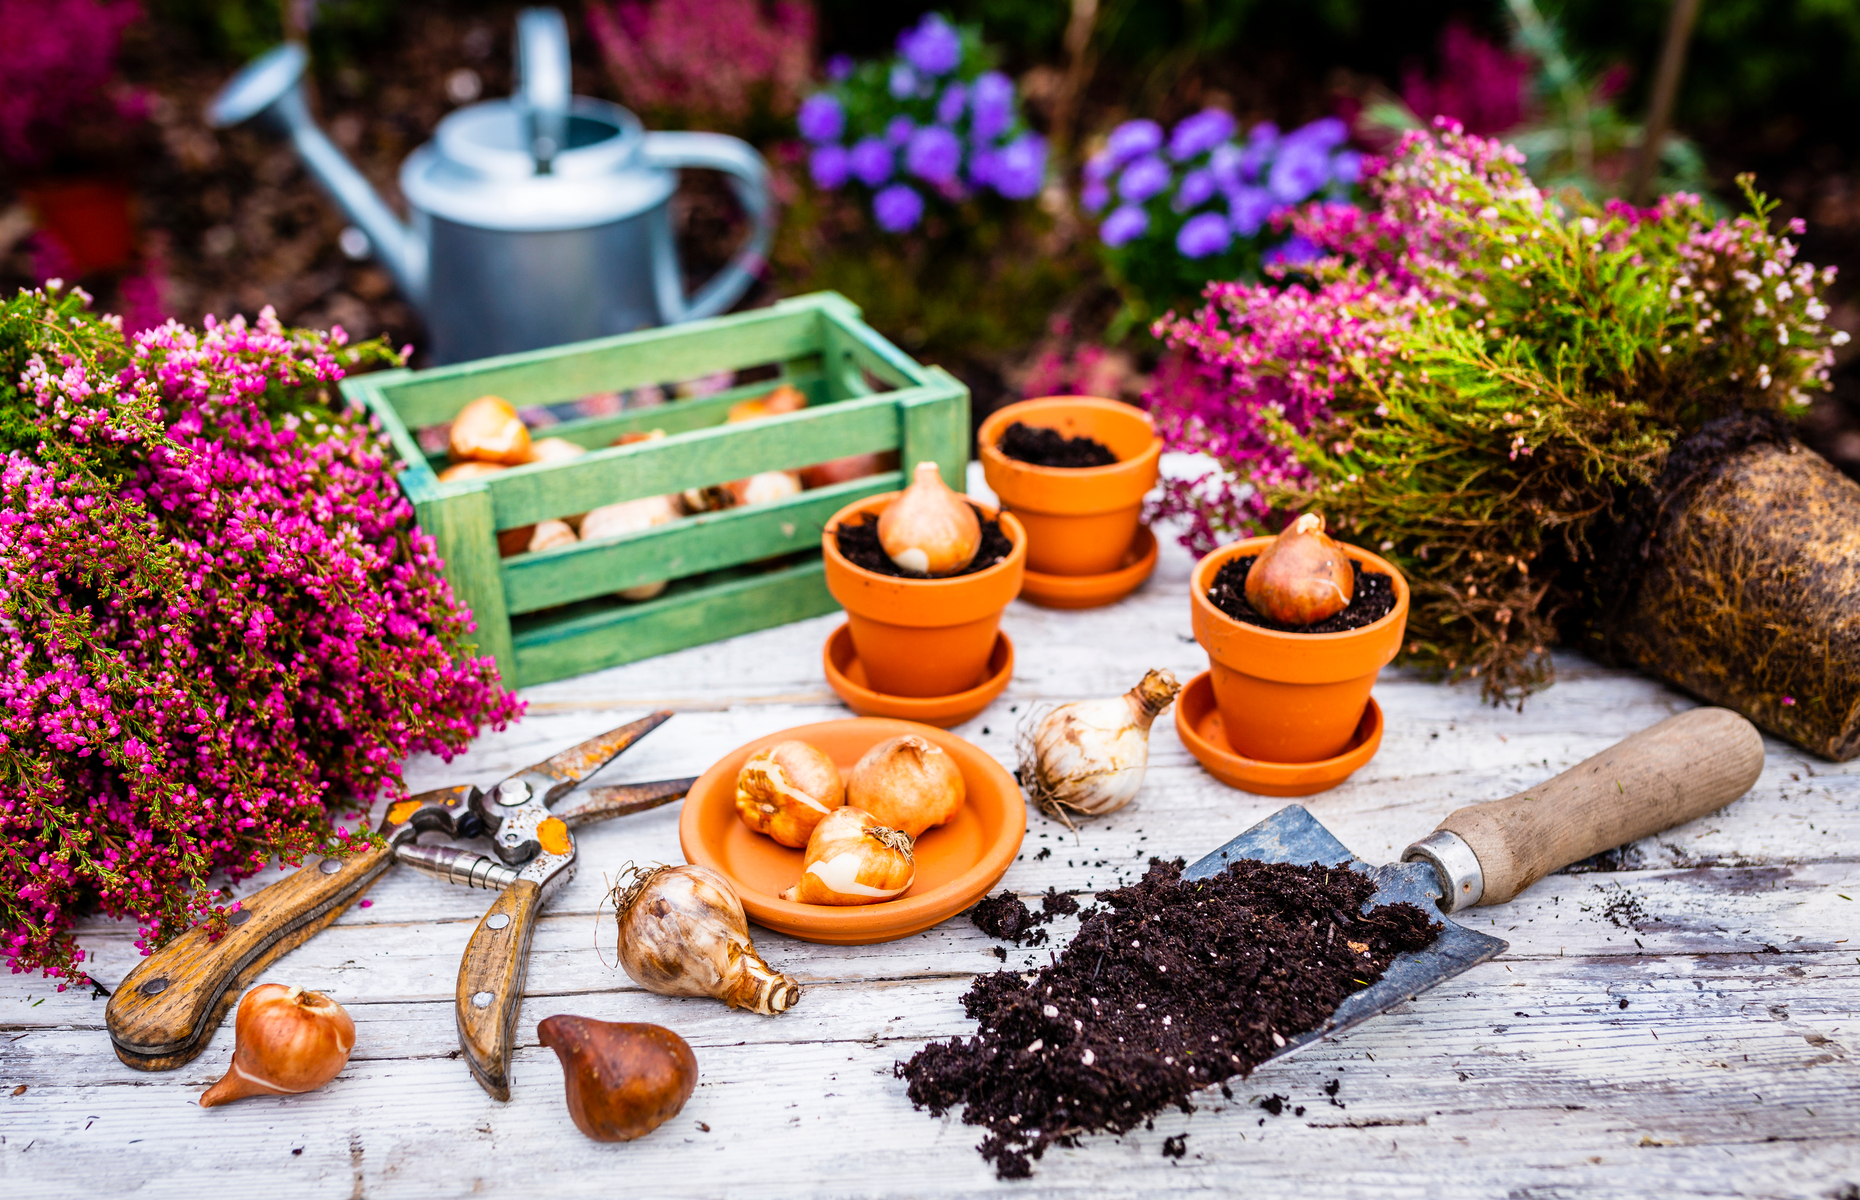 You can get everything from ornamental flowers to bulbs and seeds delivered to your door. Image: iMarzi / Shutterstock